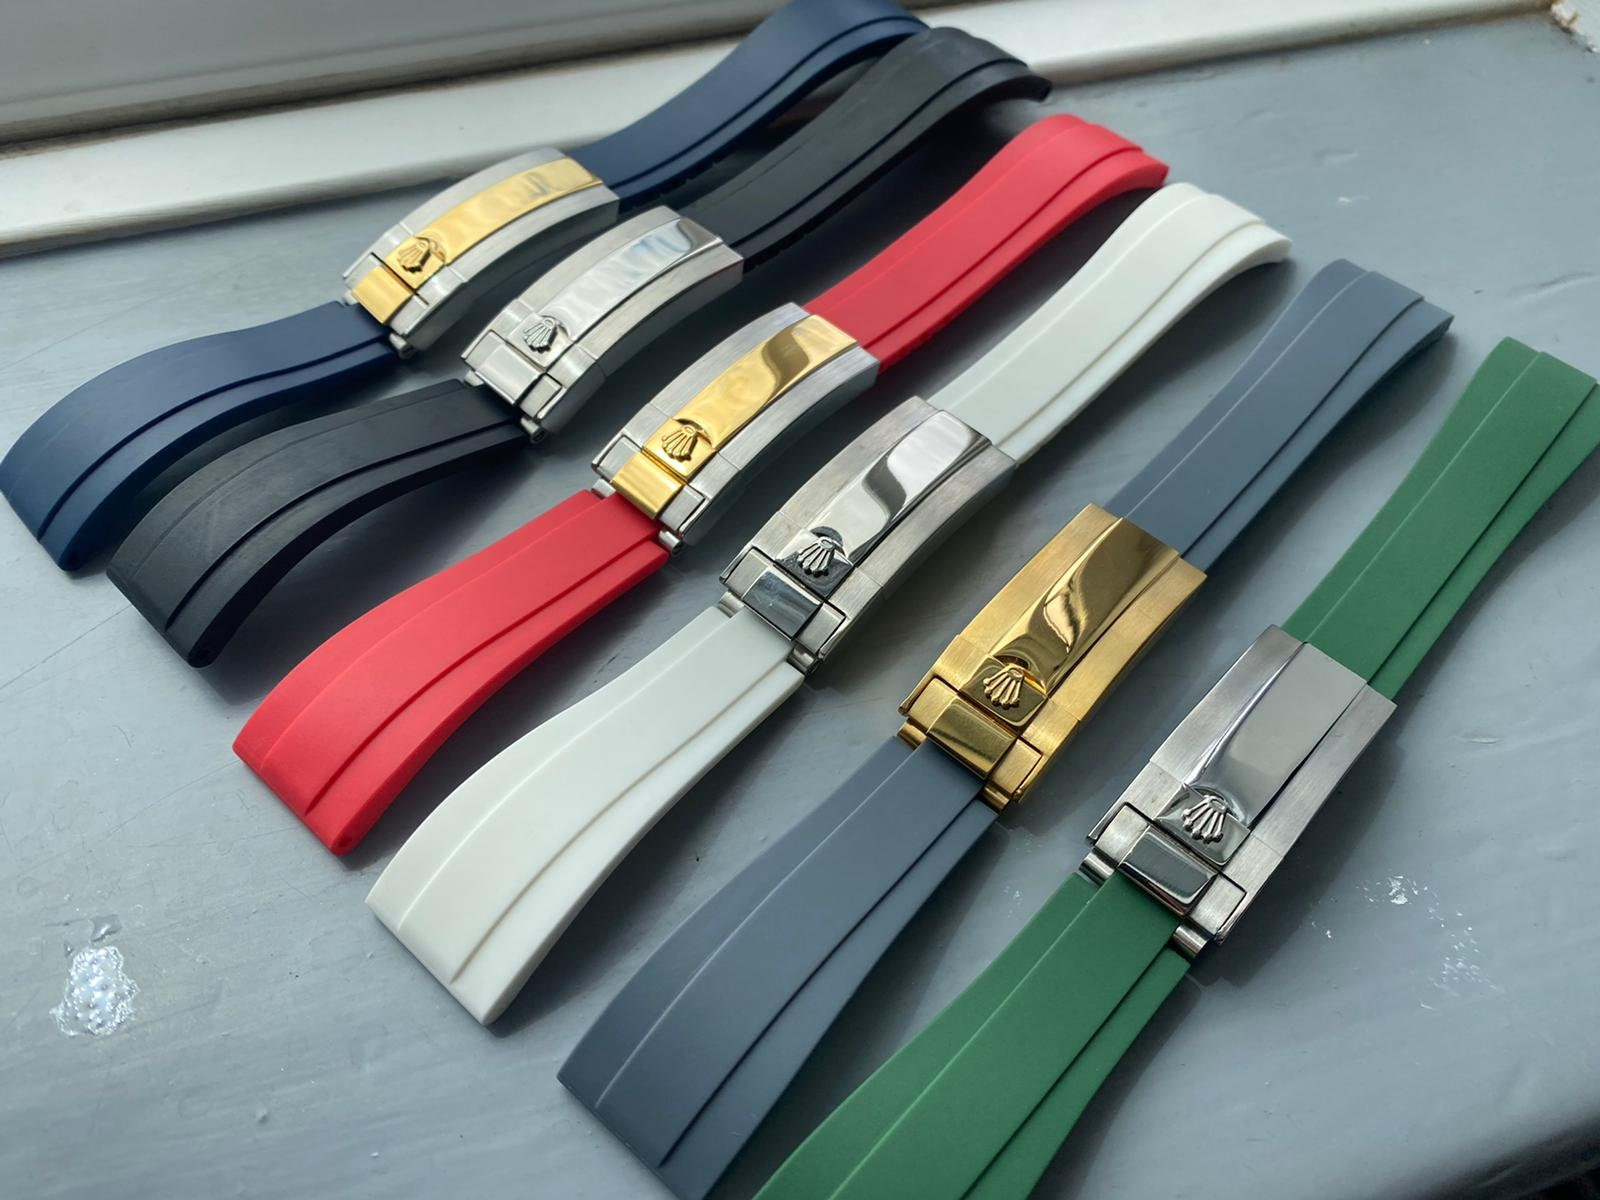 Rolex 20mm Oysterflex Rubber Strap Band for Rolex Watch Daytona Submariner GMT Explorer Yacht-Master 6x colors new